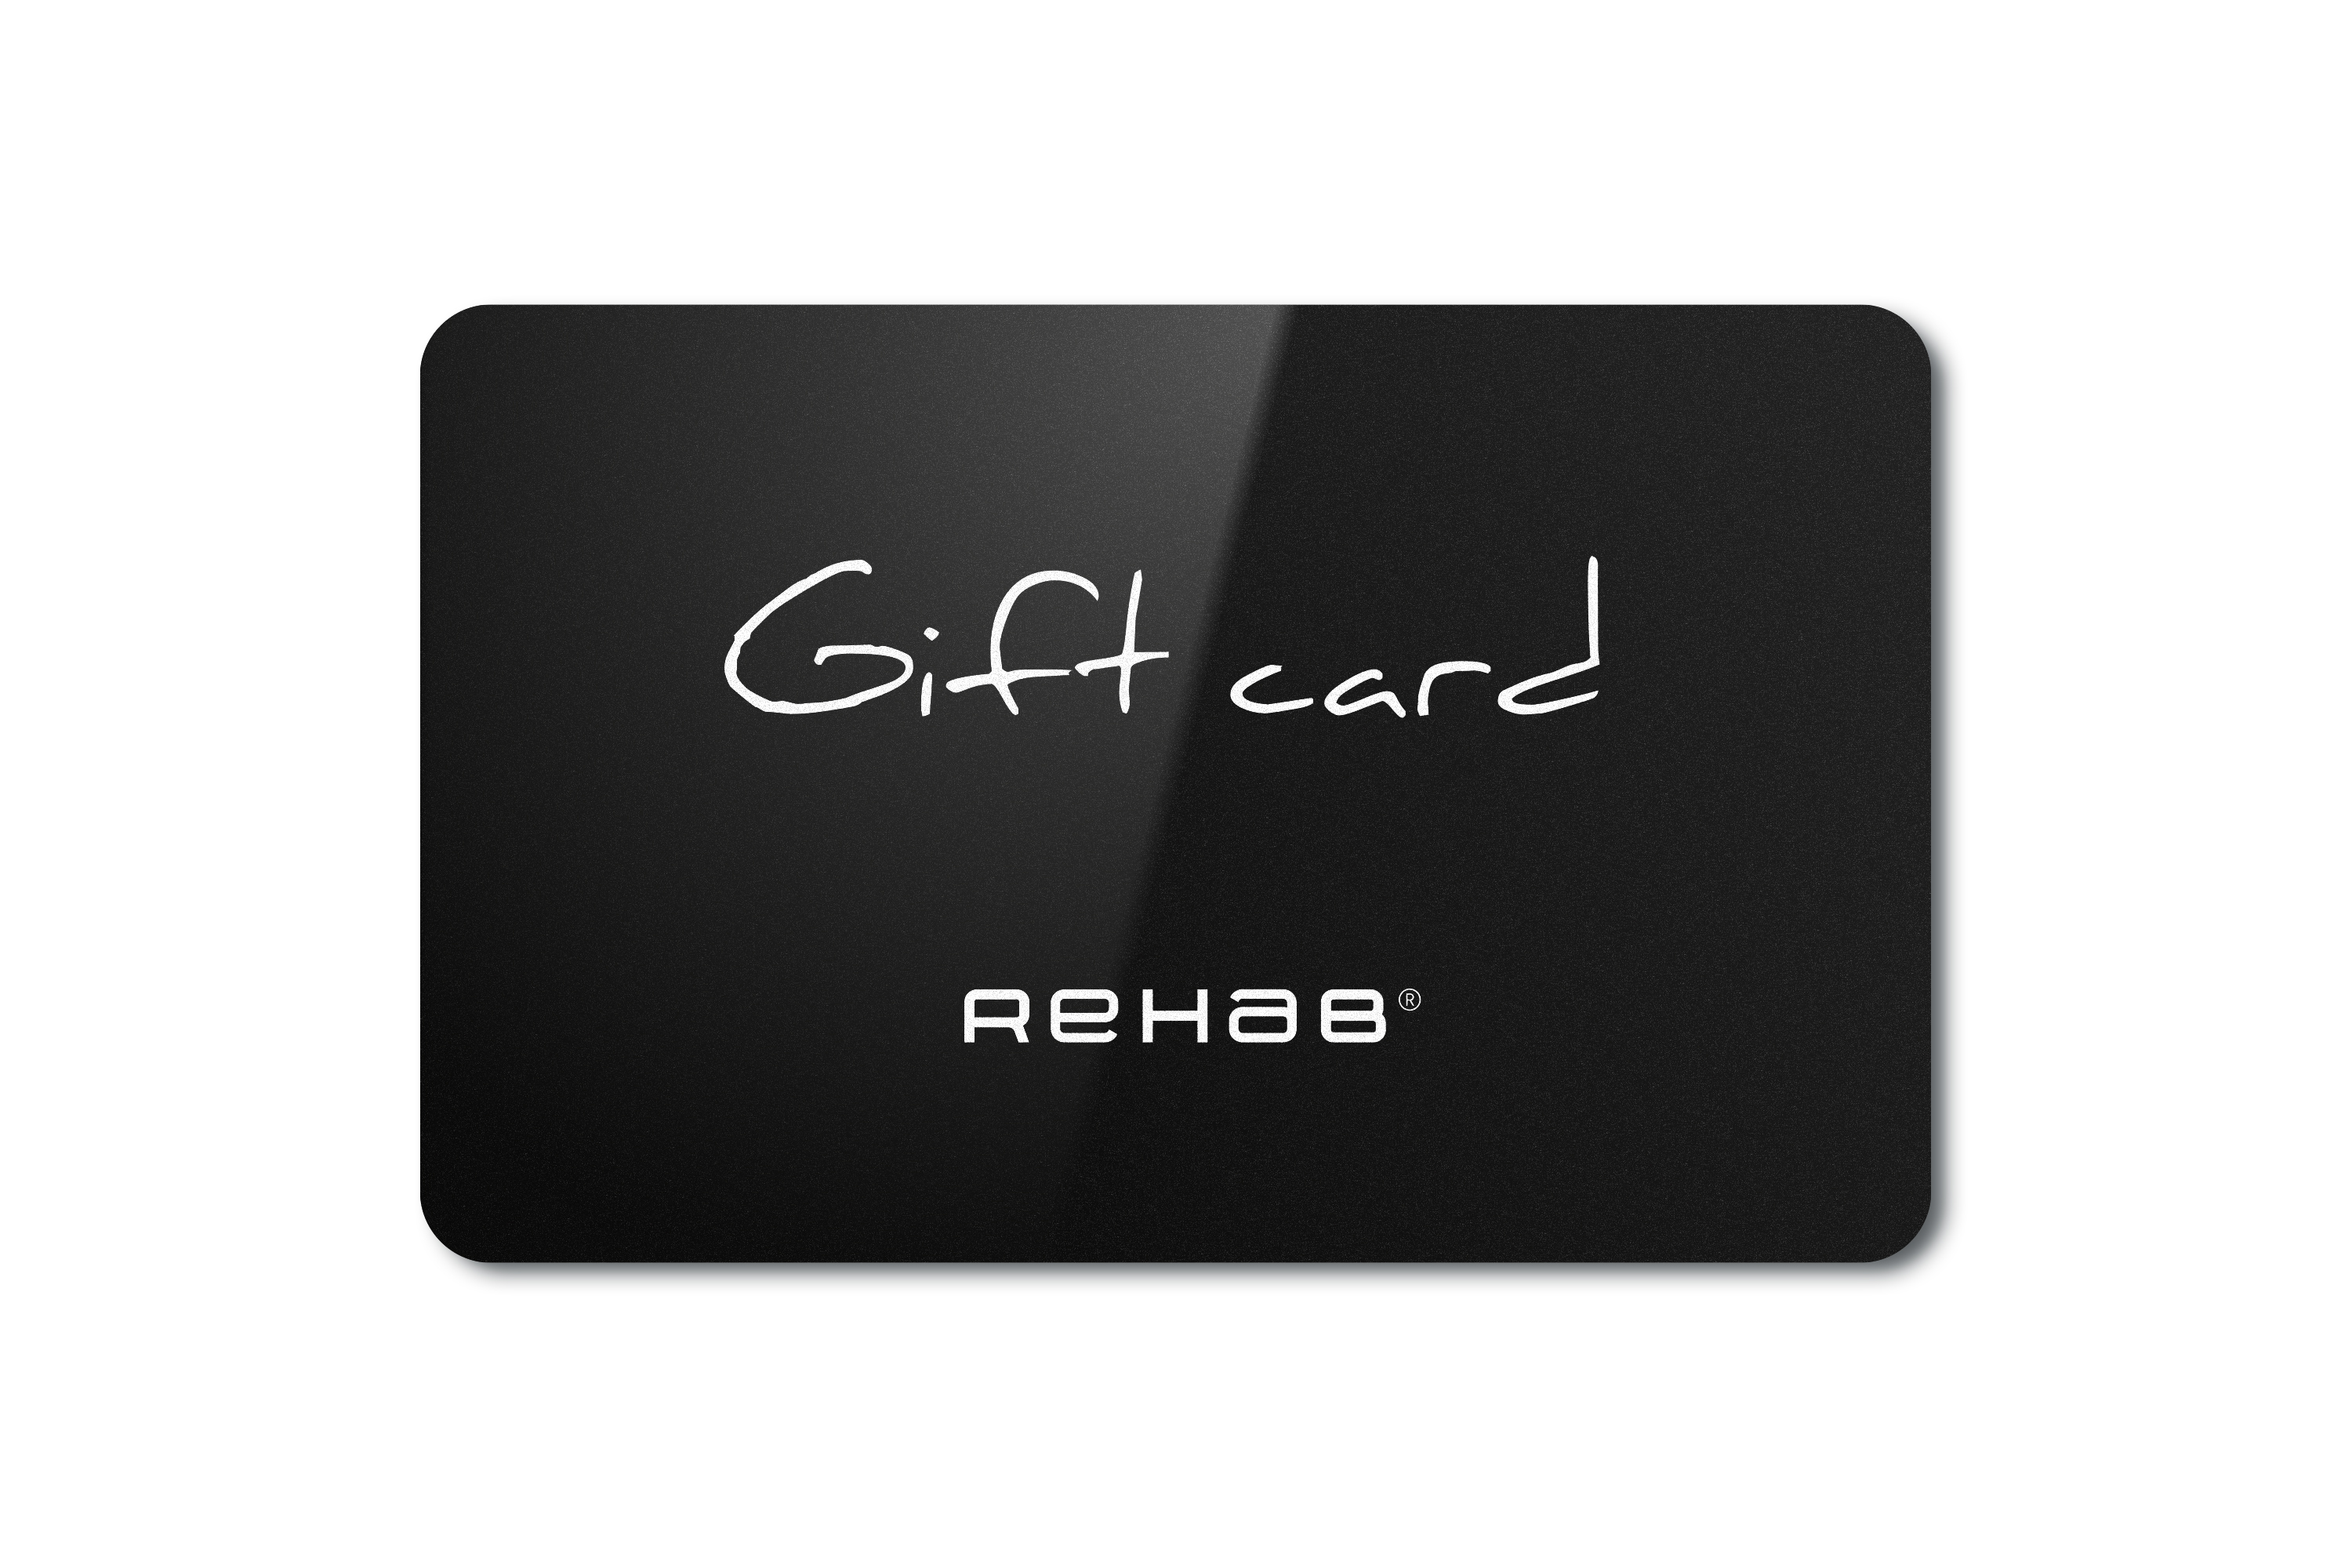 REHAB giftcard